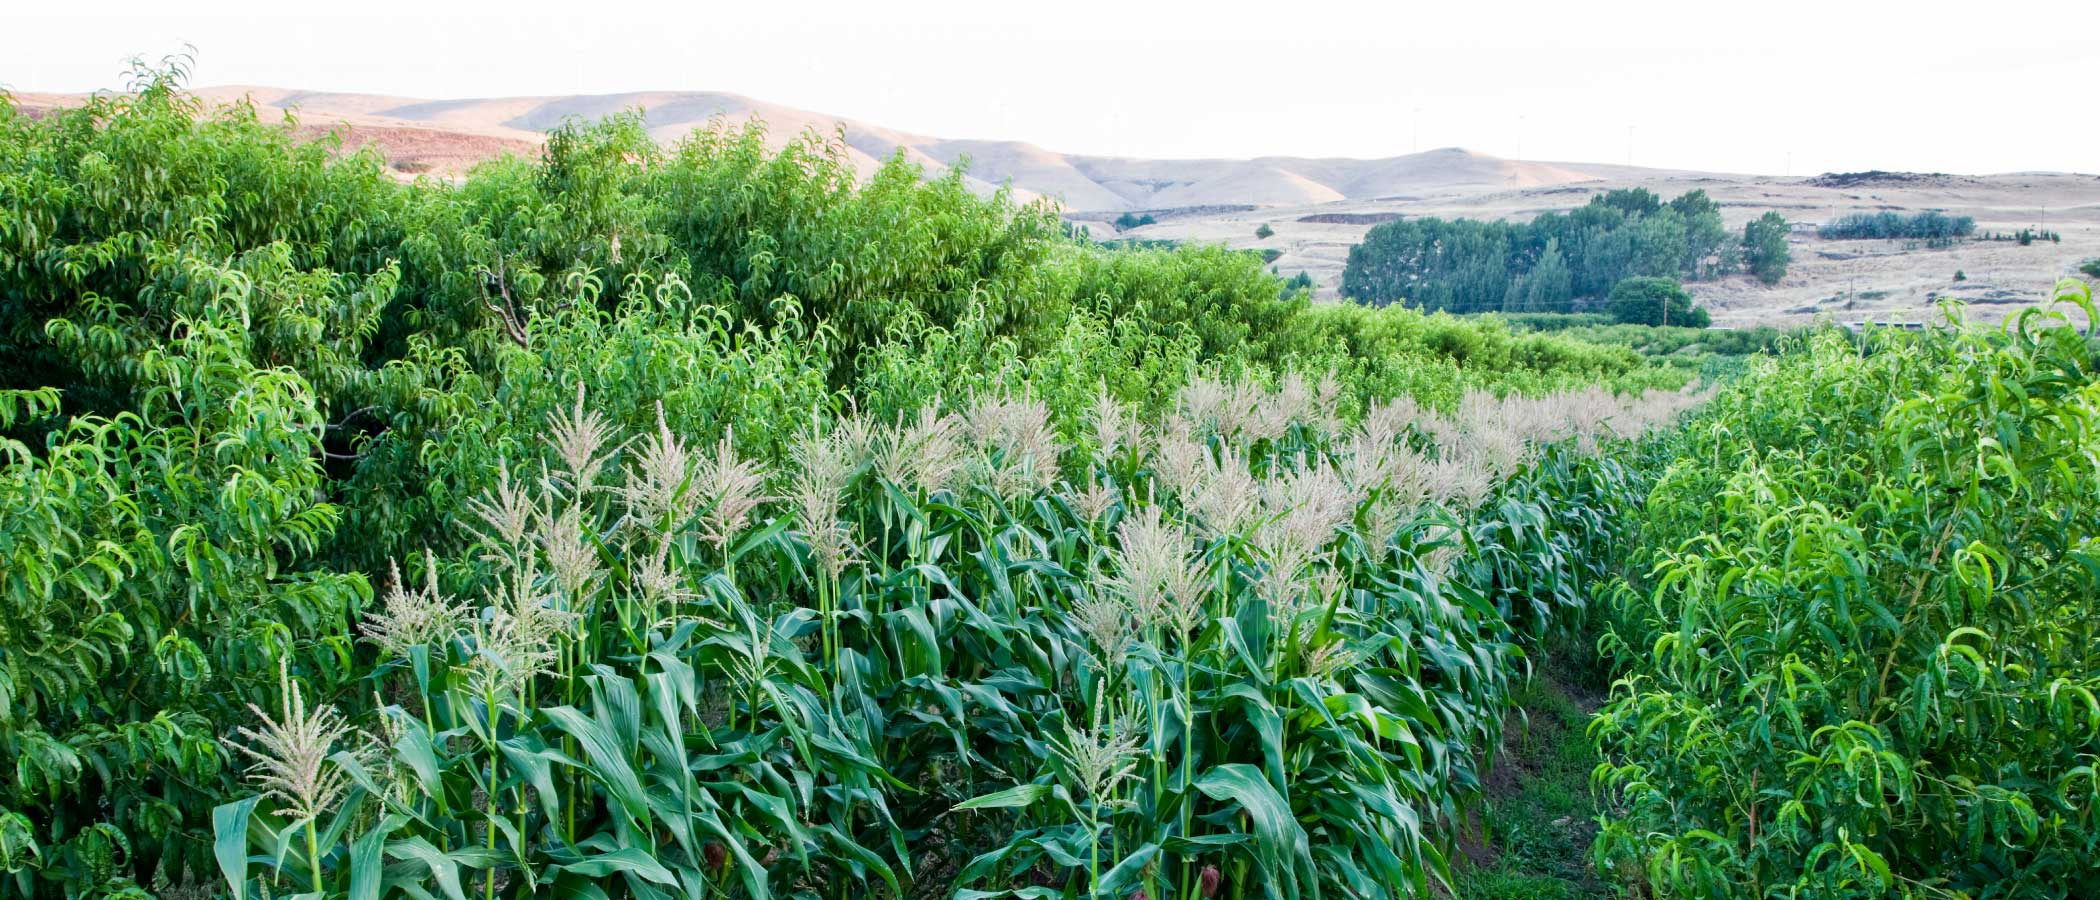 A new Freestone Peach orchard intercropped with corn in Klickitat County, south central Washington.